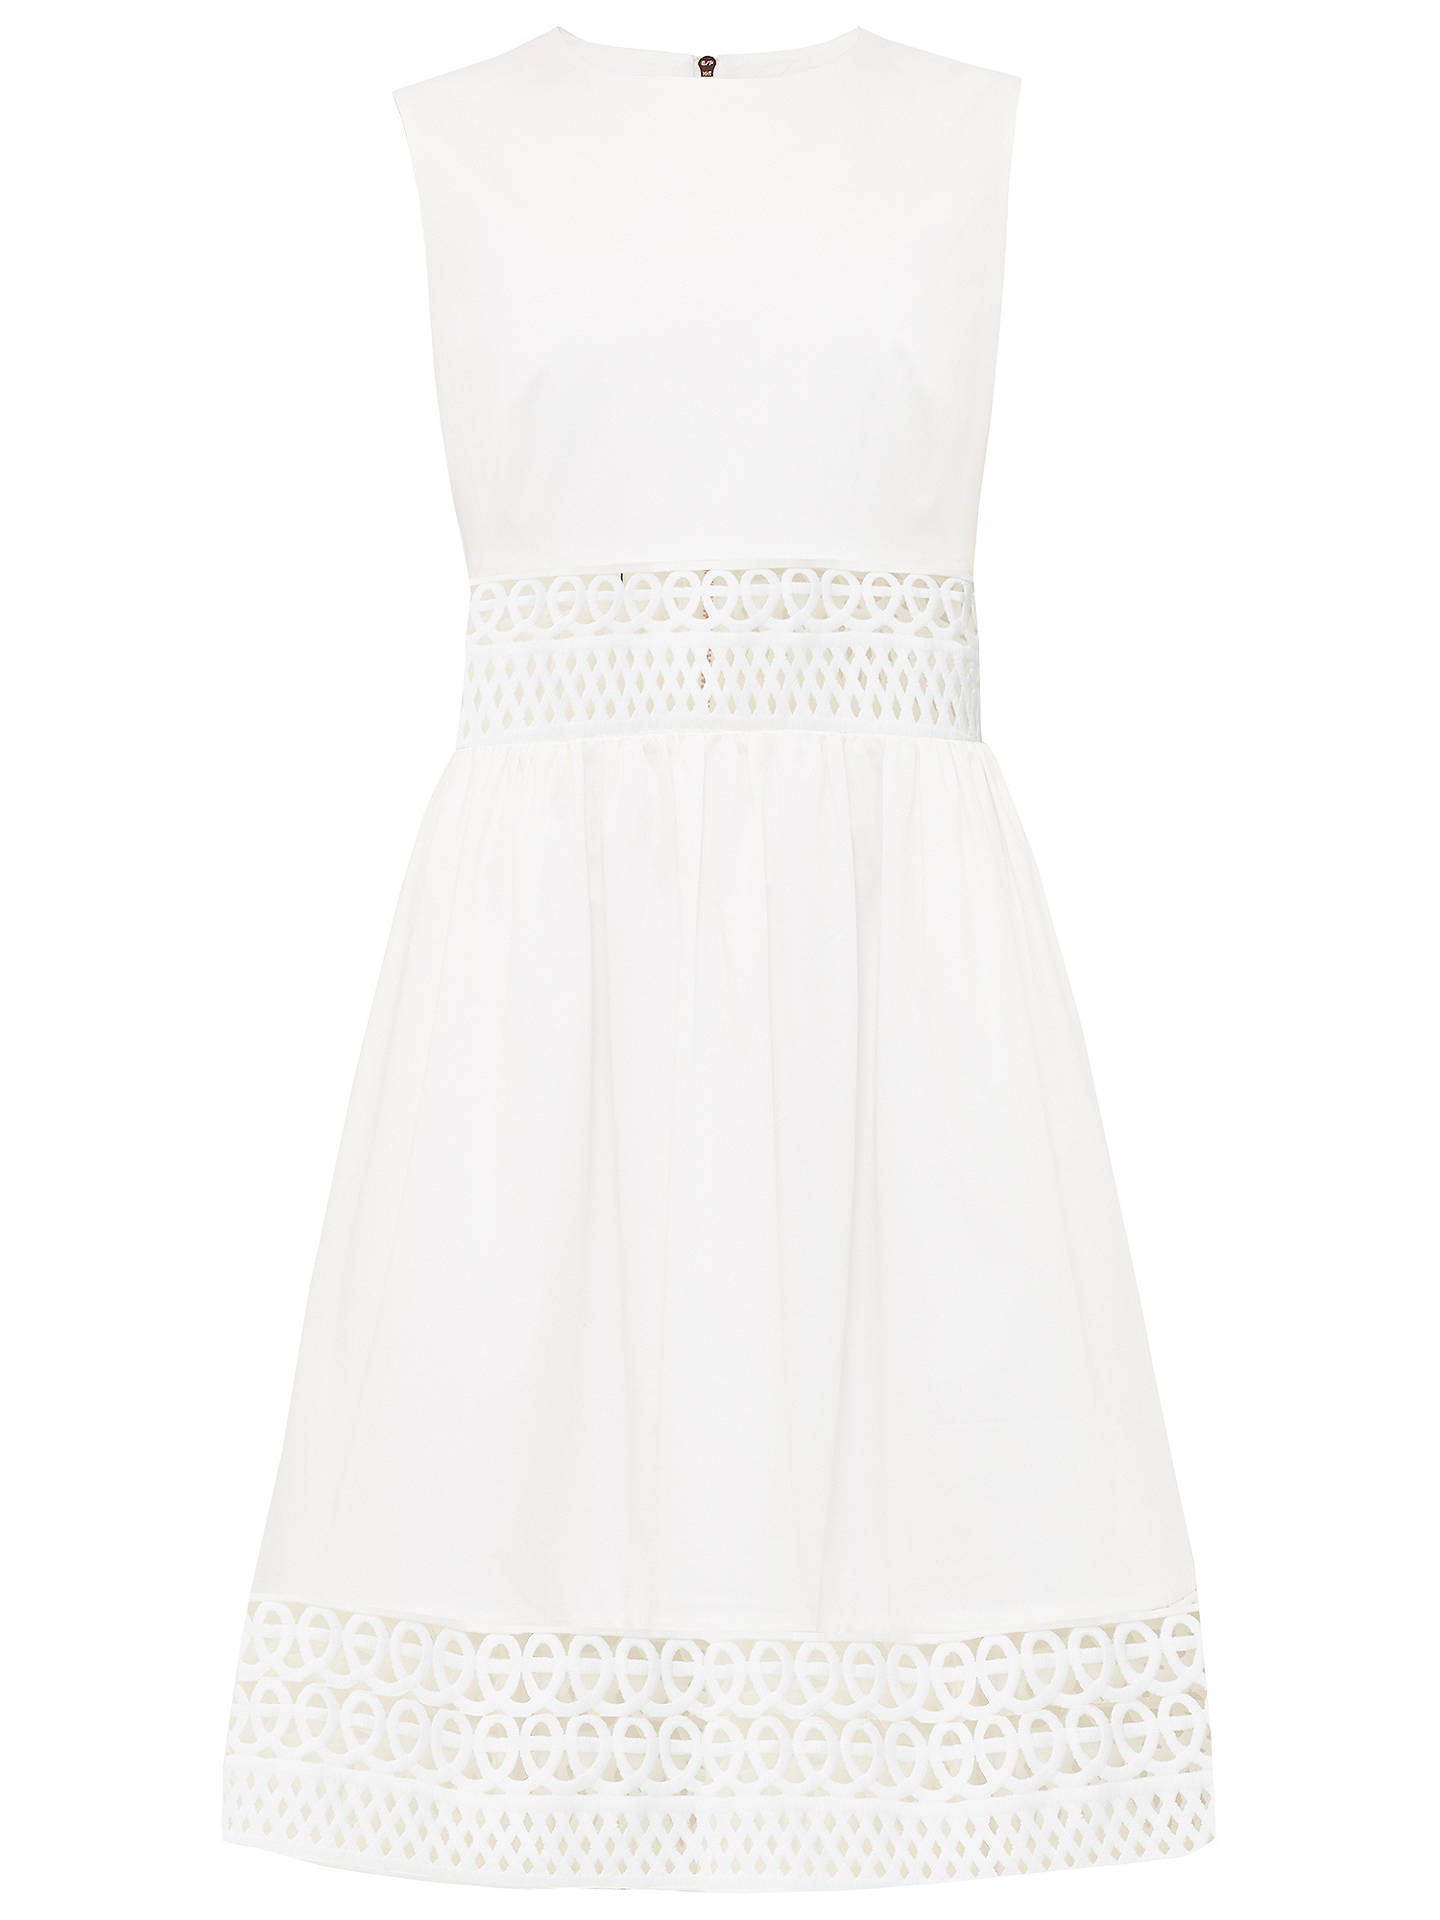 92fb54b0e068 Ted Baker Dayzey A-Line Lace Panel Dress at John Lewis   Partners